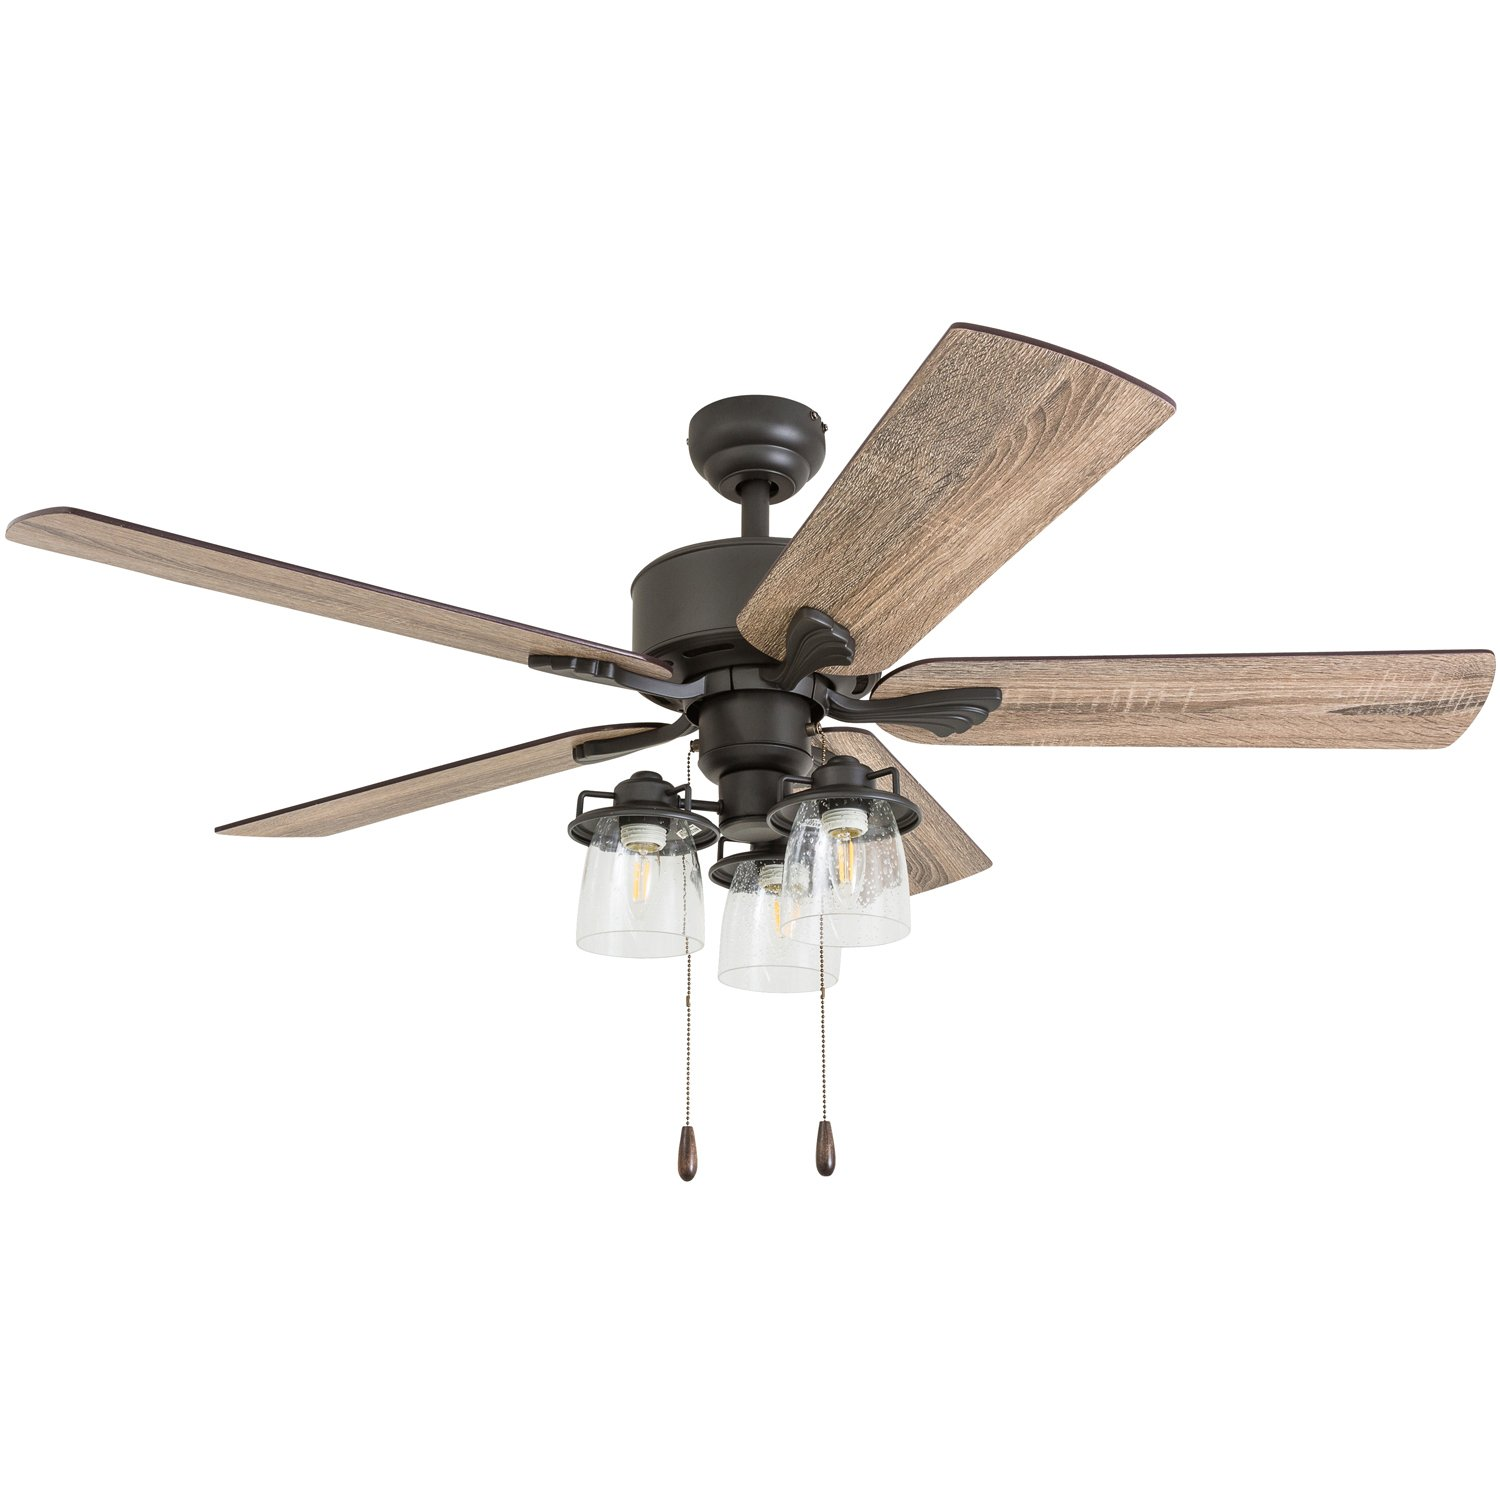 Prominence Home 50683 01 River Run Farmhouse Ceiling Fan 3 Sd Remote 52 Barnwood Tumbleweed Aged Bronze Com